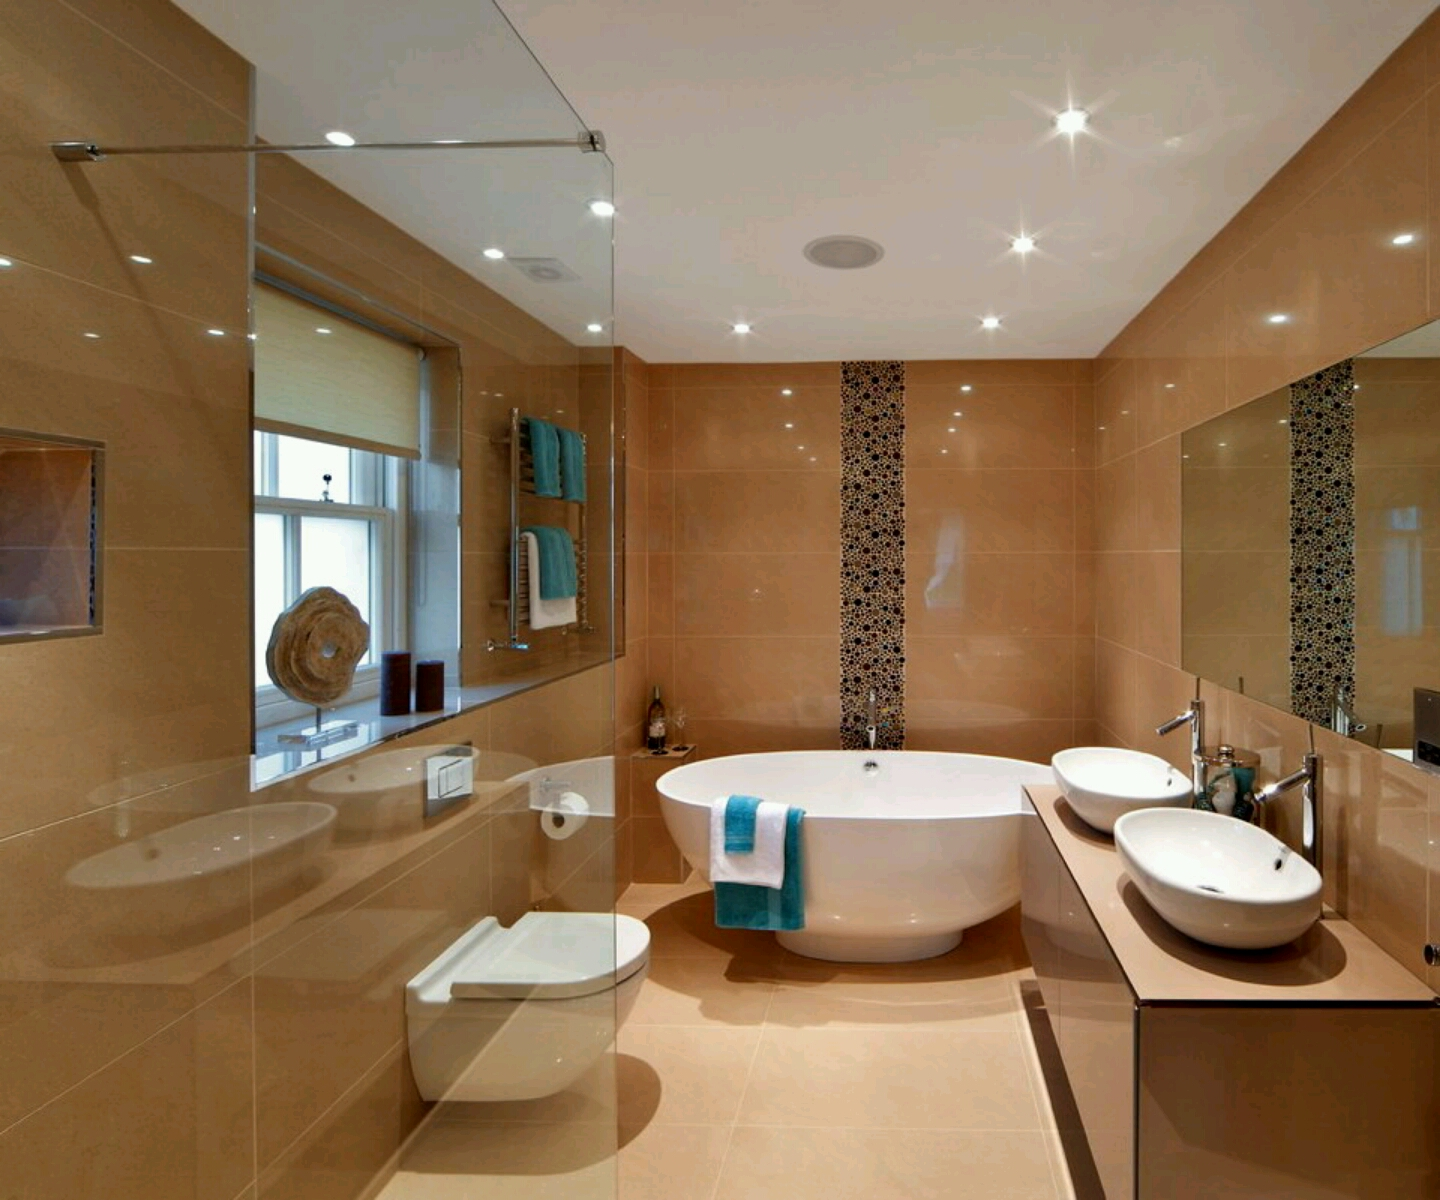 New home designs latest luxury modern bathrooms designs for Bathroom ideas photos